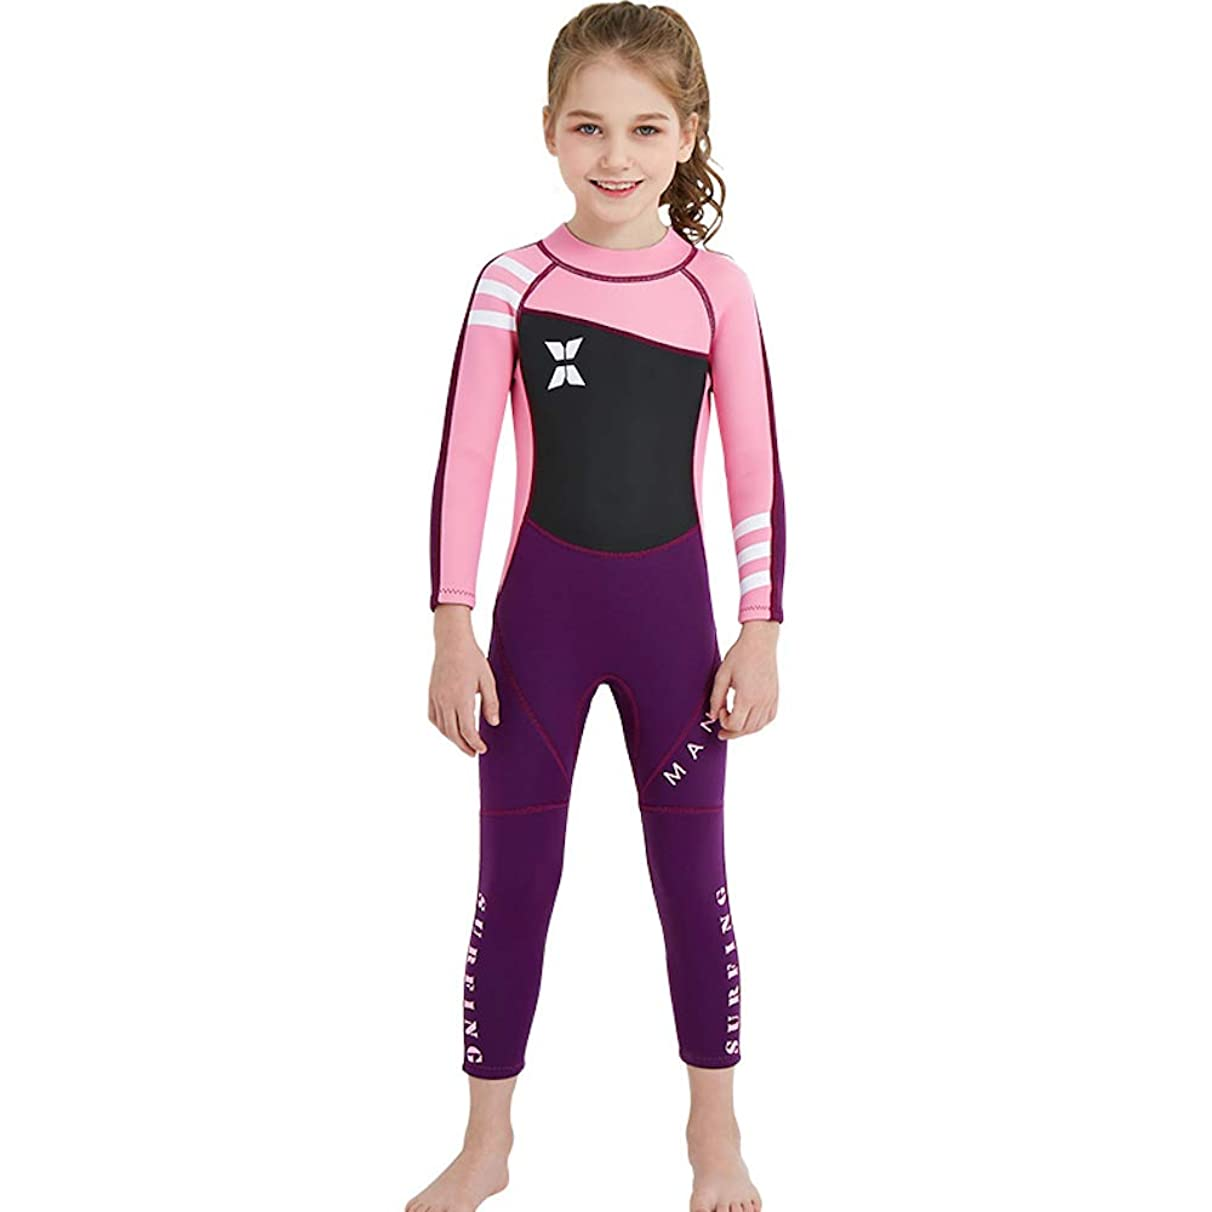 DIVE&SAIL Kids 2.5Mm Long Sleeve One Piece Full Body Wetsuit Uv Protection Thermal Swimwear Keep Warm for Scuba Diving Surfing Snorkeling Swimming Fishing for Boys Girls (Pink, Small)